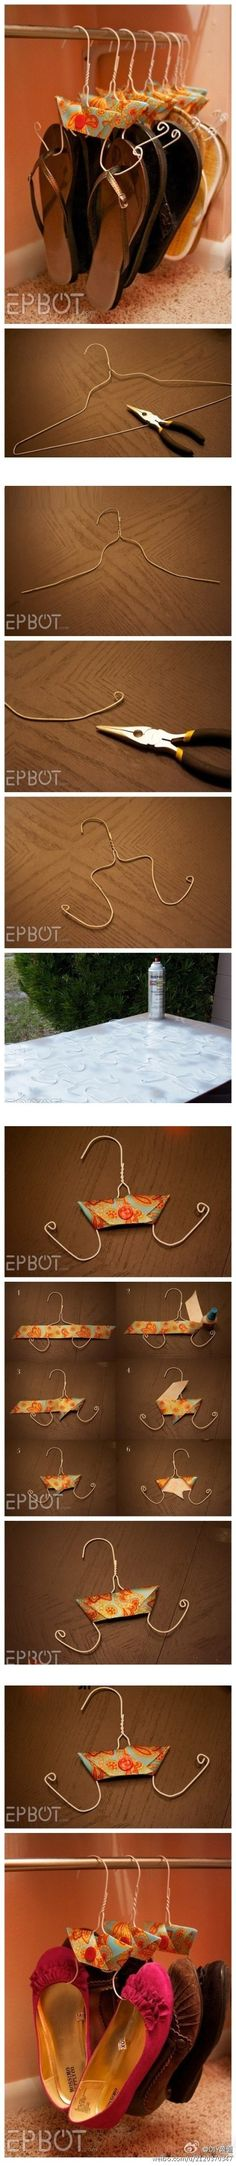 Turn Clothes Hangers Into Shoe Hangers! (31 Insanely Easy and Clever DIY Projects)